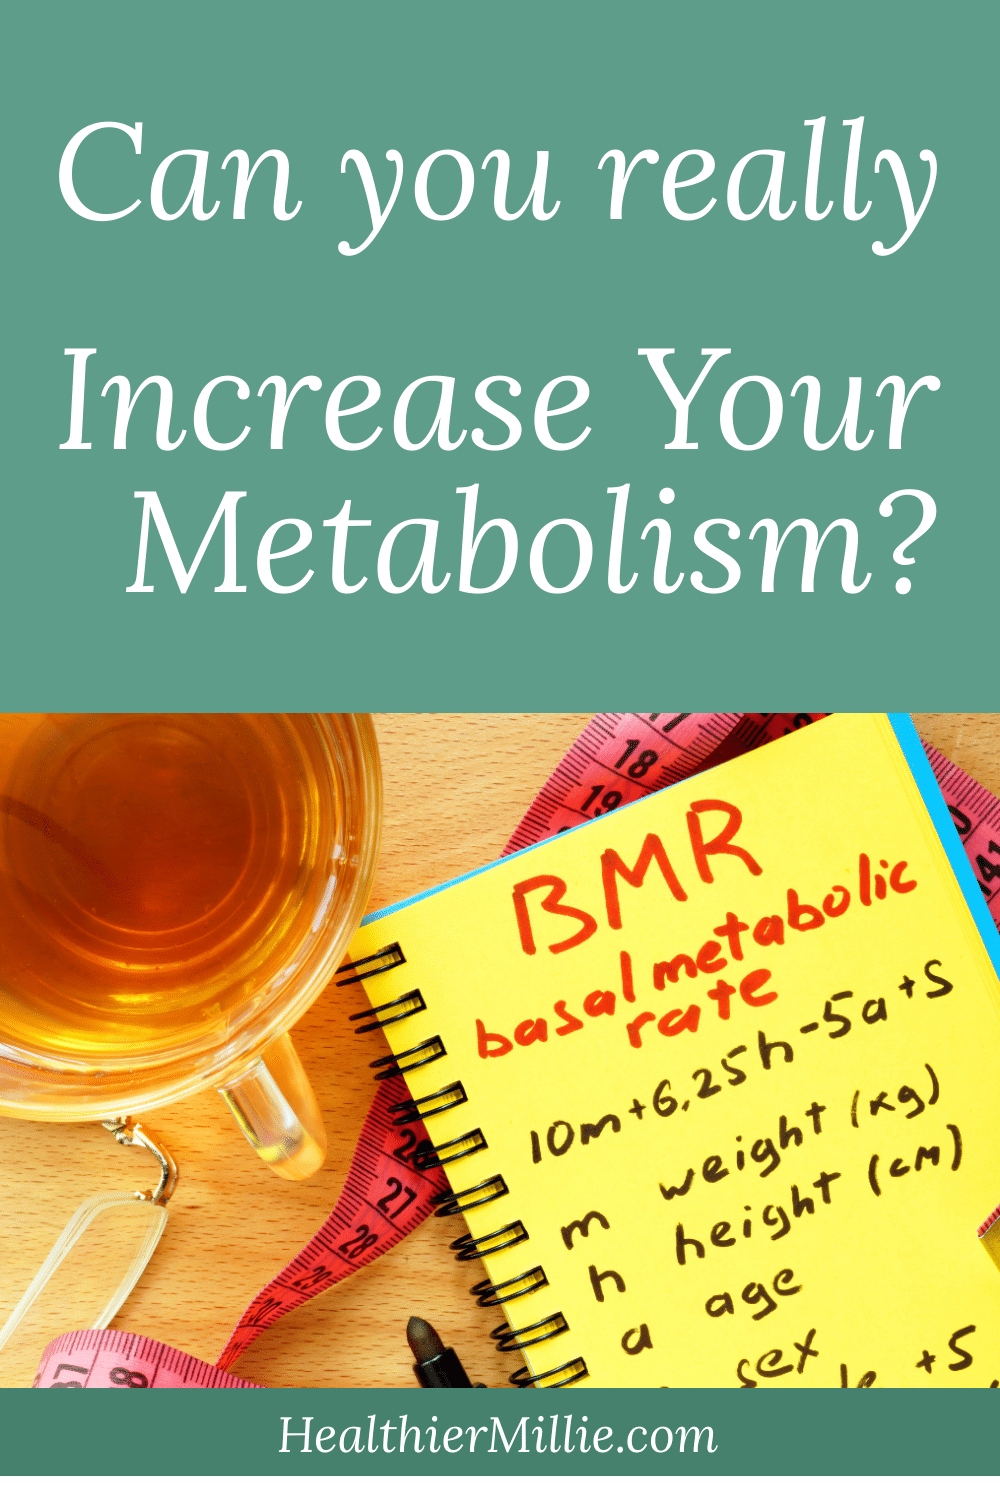 Can You Really Increase Your Metabolism?